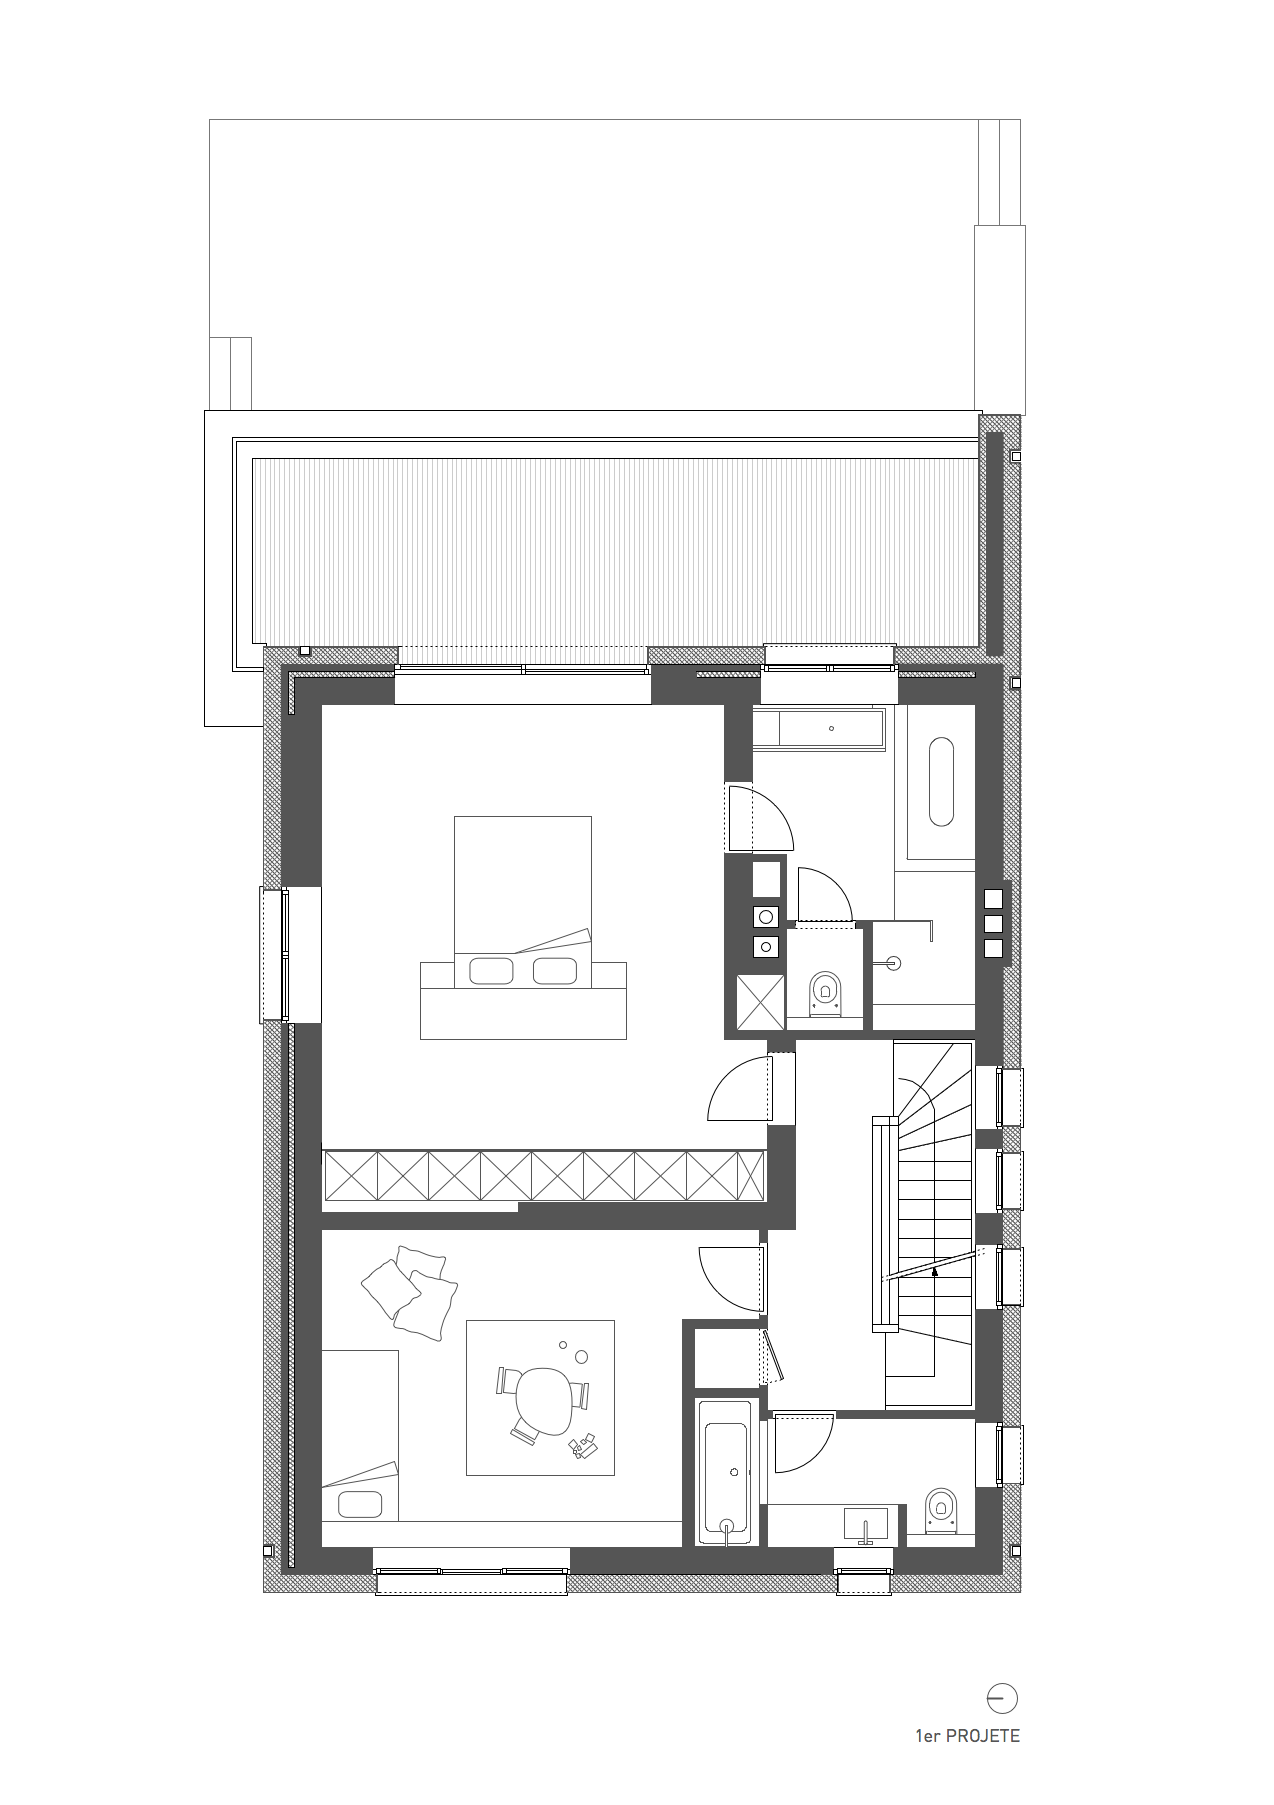 plan architecte bruxelles